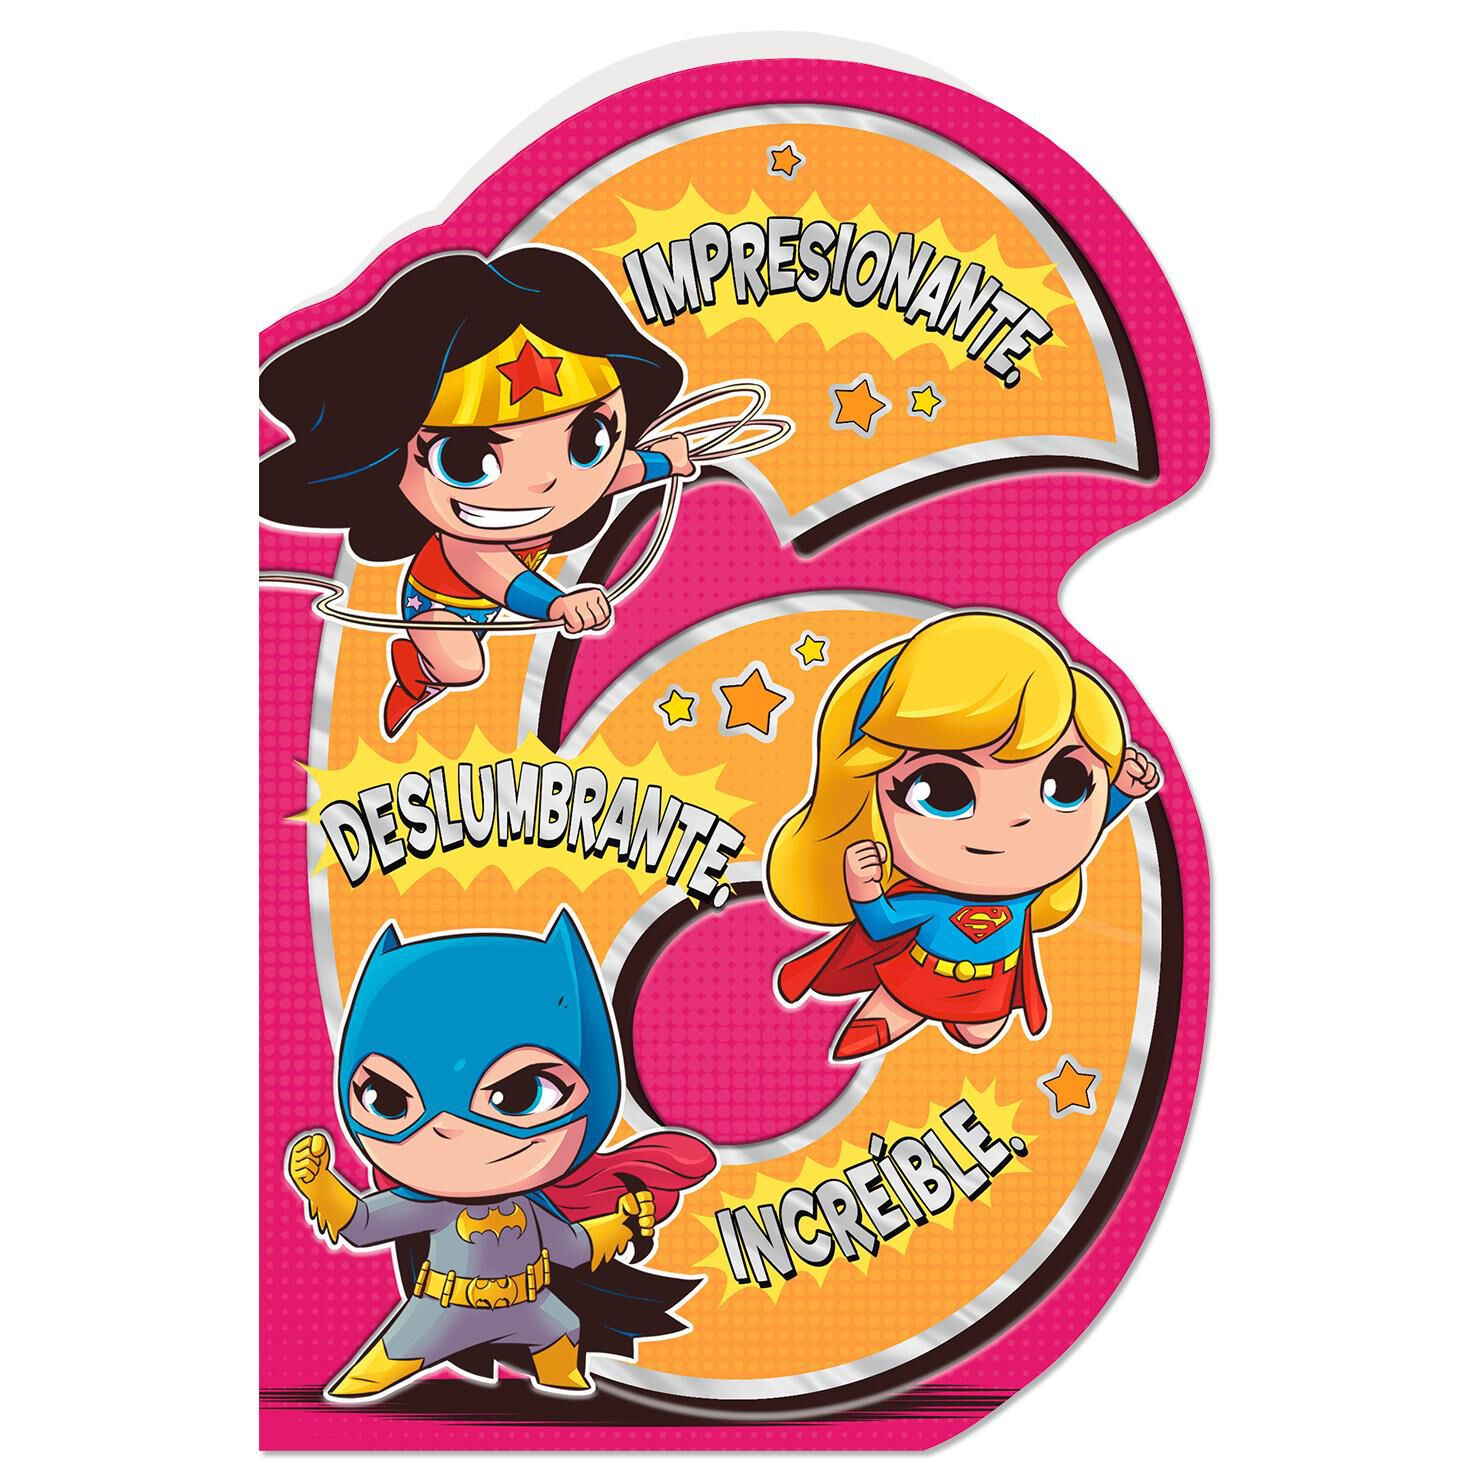 DC ComicsTM Super FriendsTM Incredible Girl Spanish Language 6th Birthday Card With Stickers